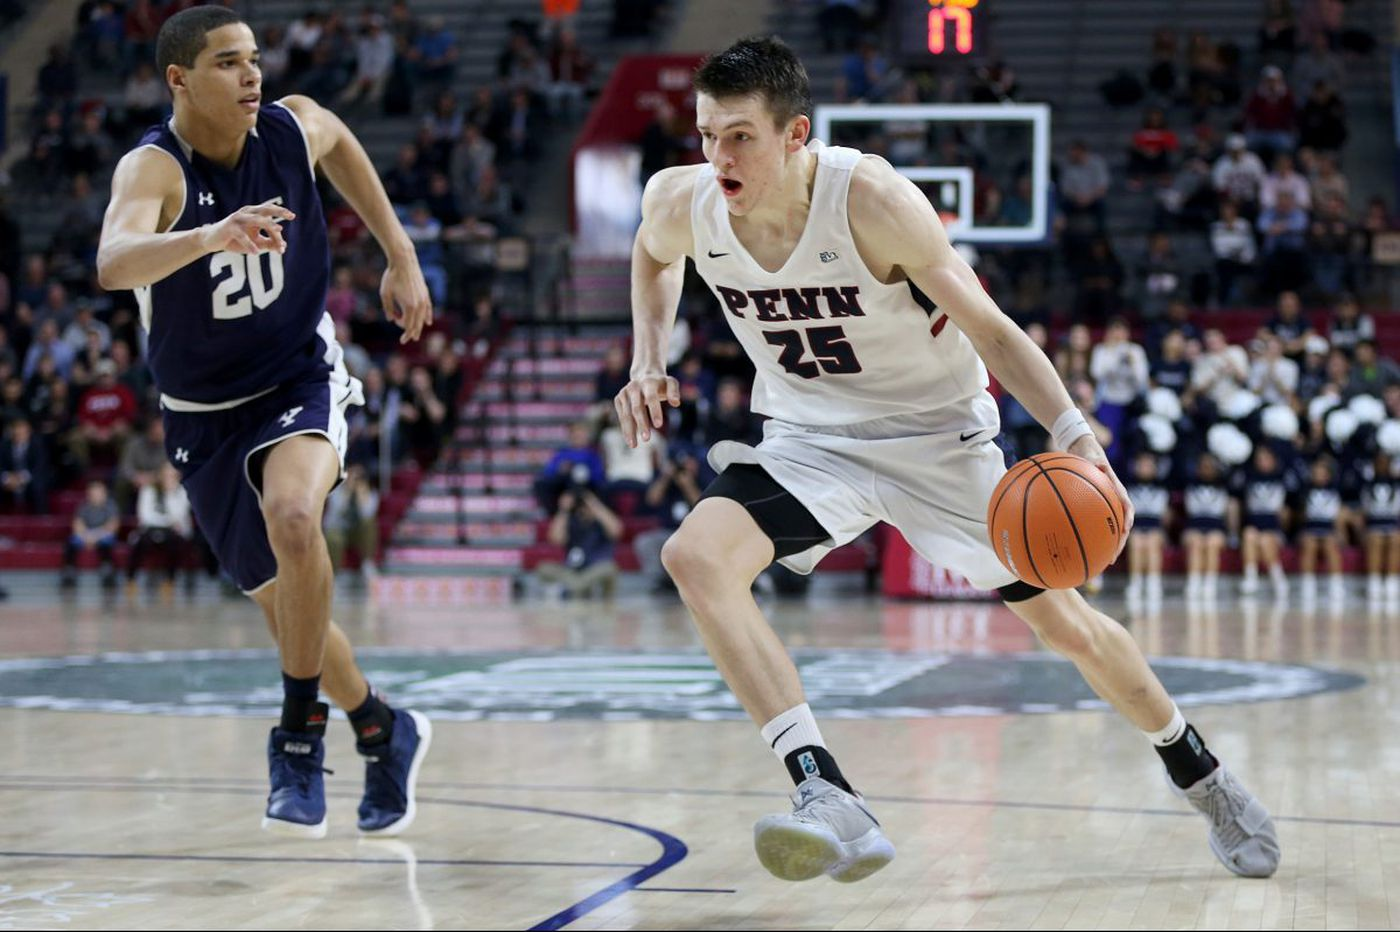 Penn takes out Yale, will face Harvard for NCAA bid